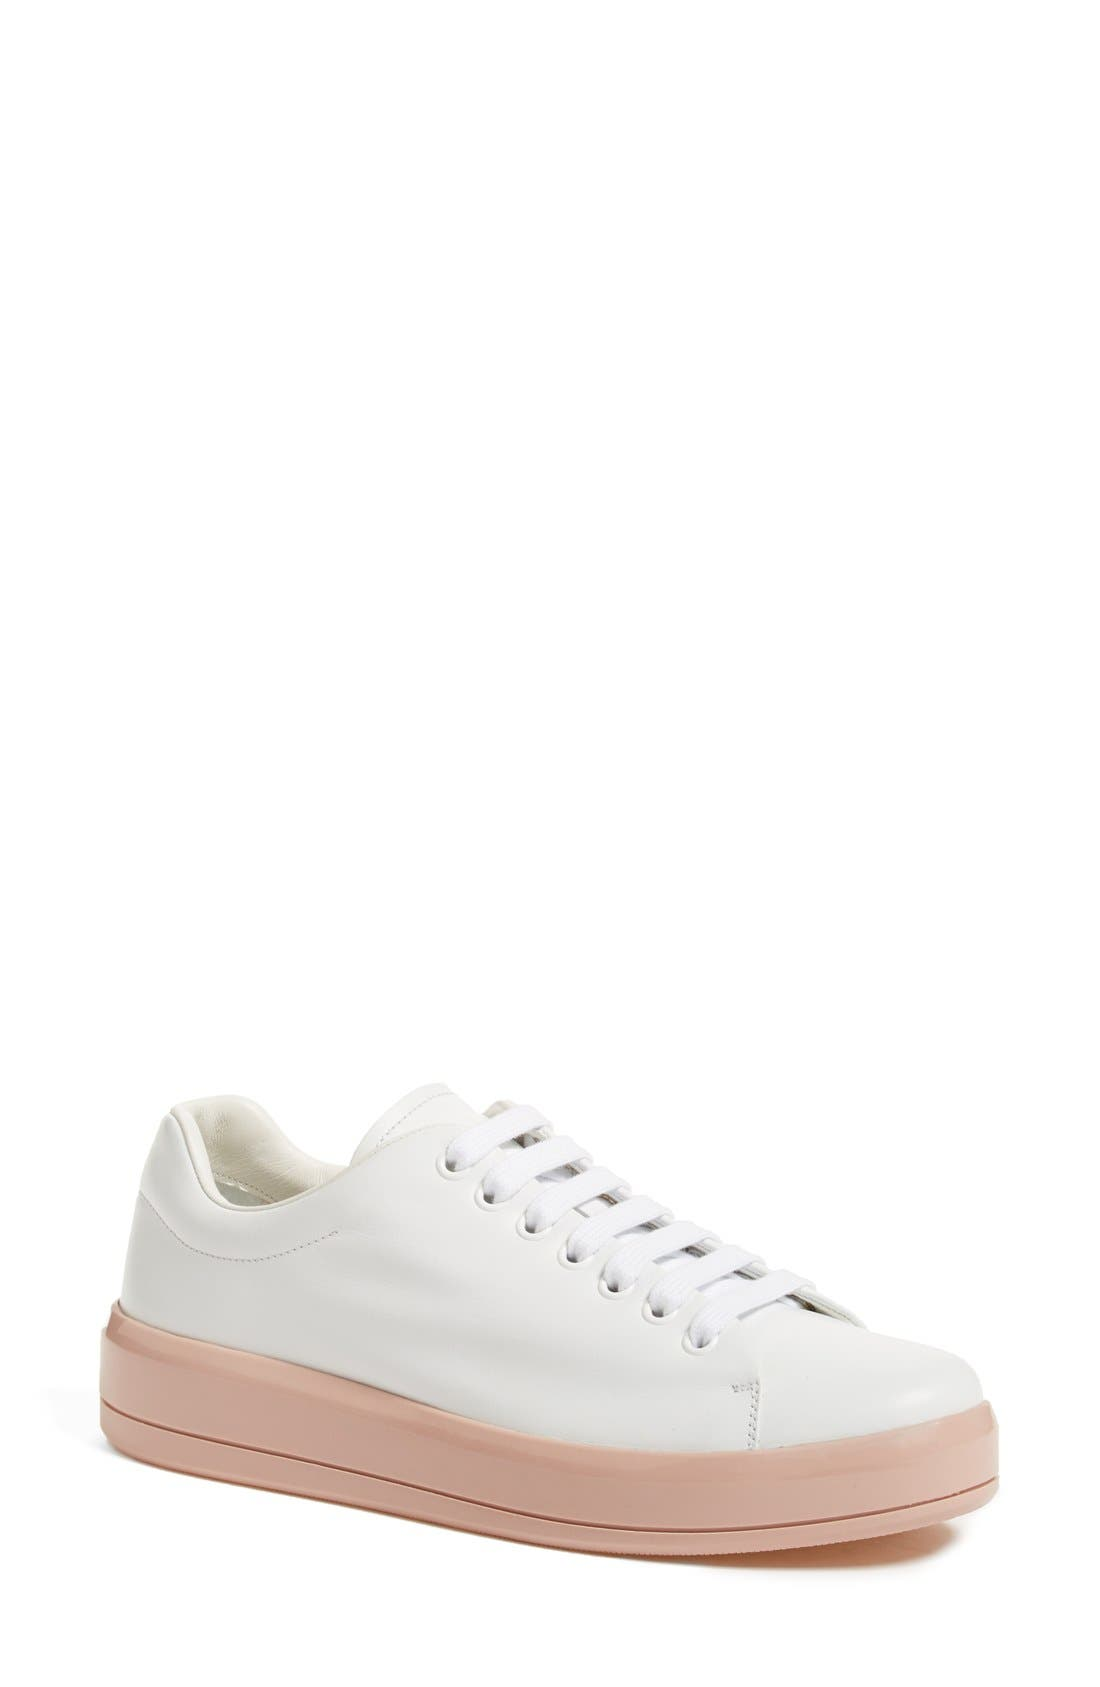 Main Image - Prada Platform Lace-Up Sneaker (Women)